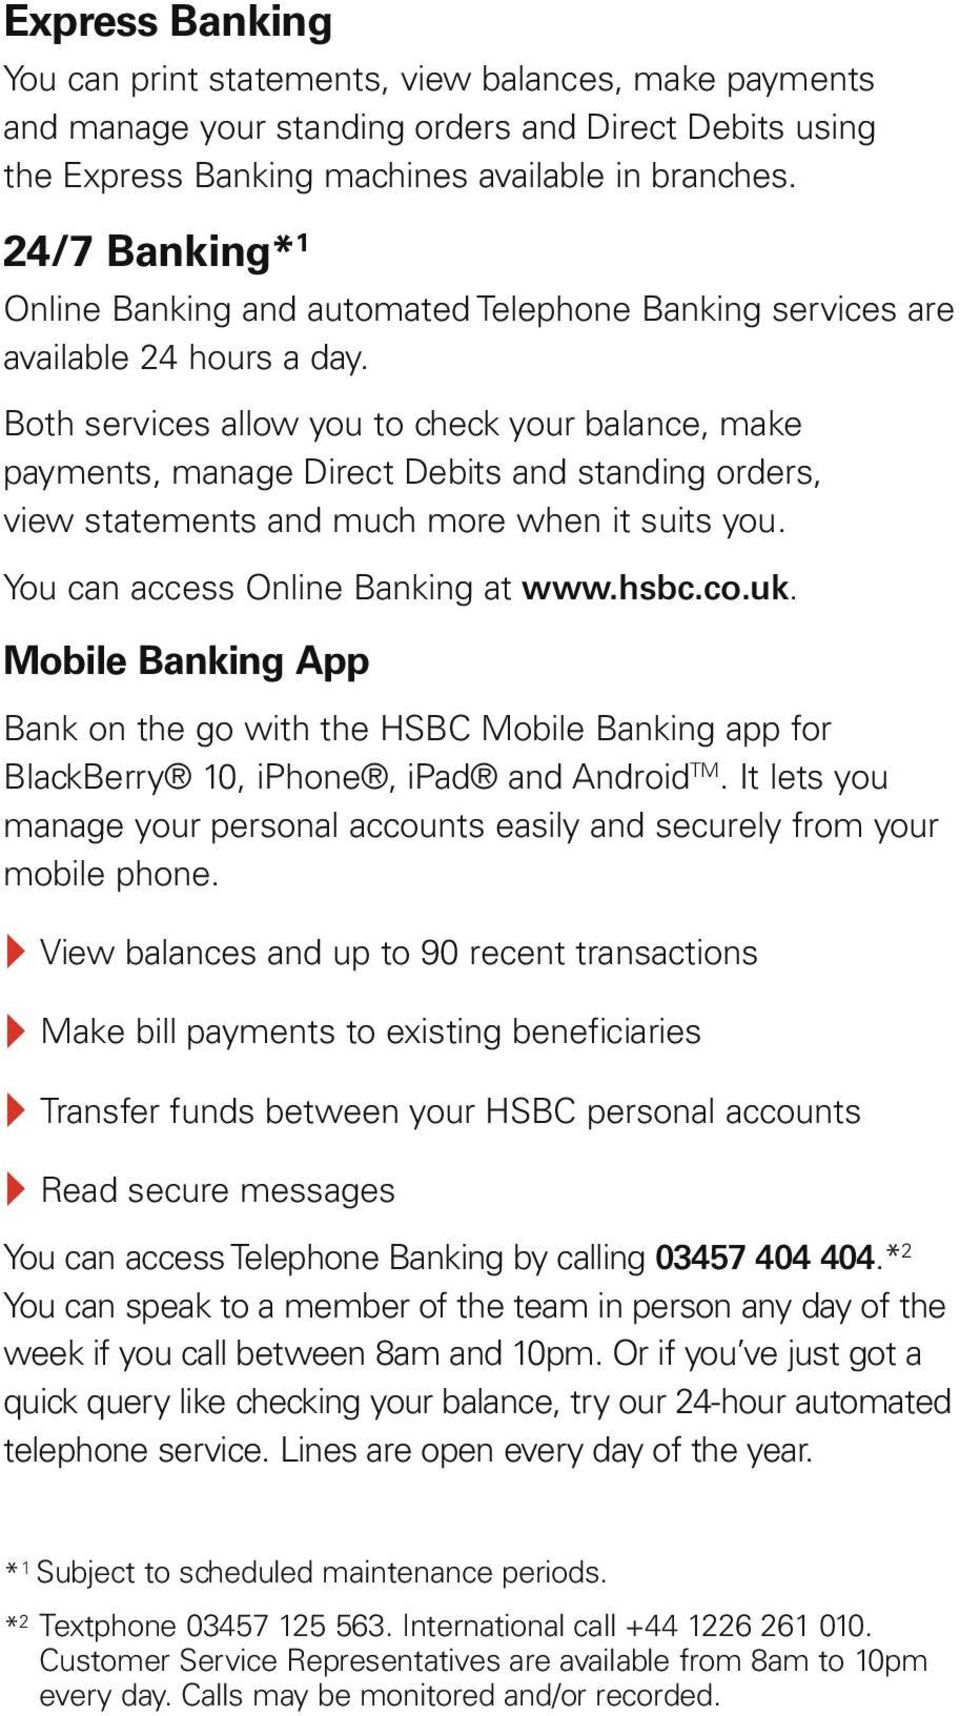 Both services allow you to check your balance, make payments, manage Direct Debits and standing orders, view statements and much more when it suits you. You can access Online Banking at www.hsbc.co.